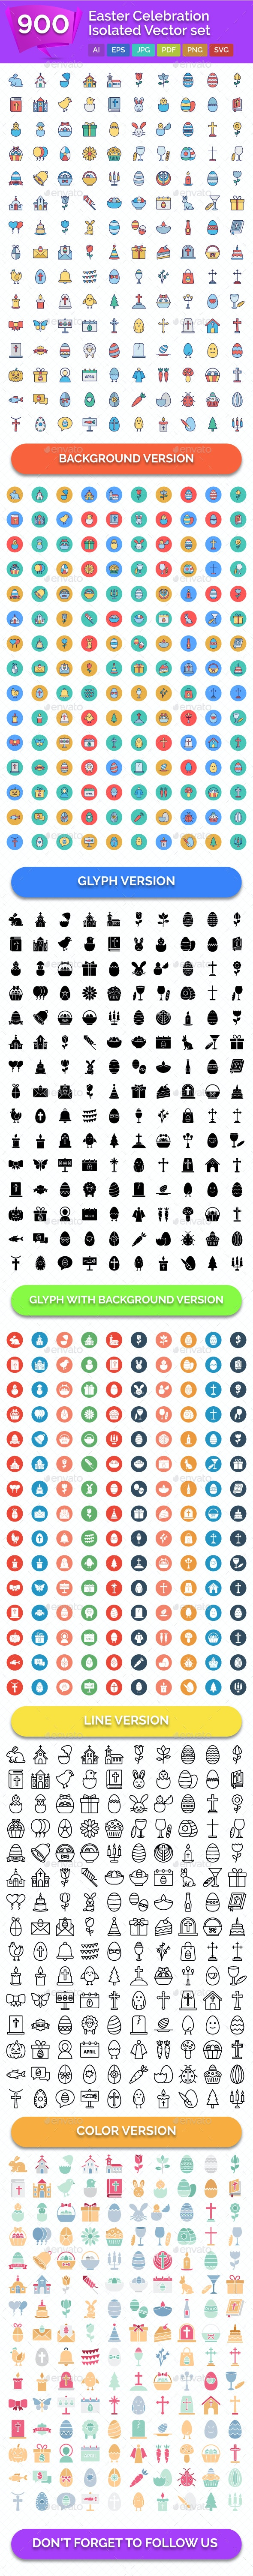 900 Easter Celebration Isolated Vector set - Icons